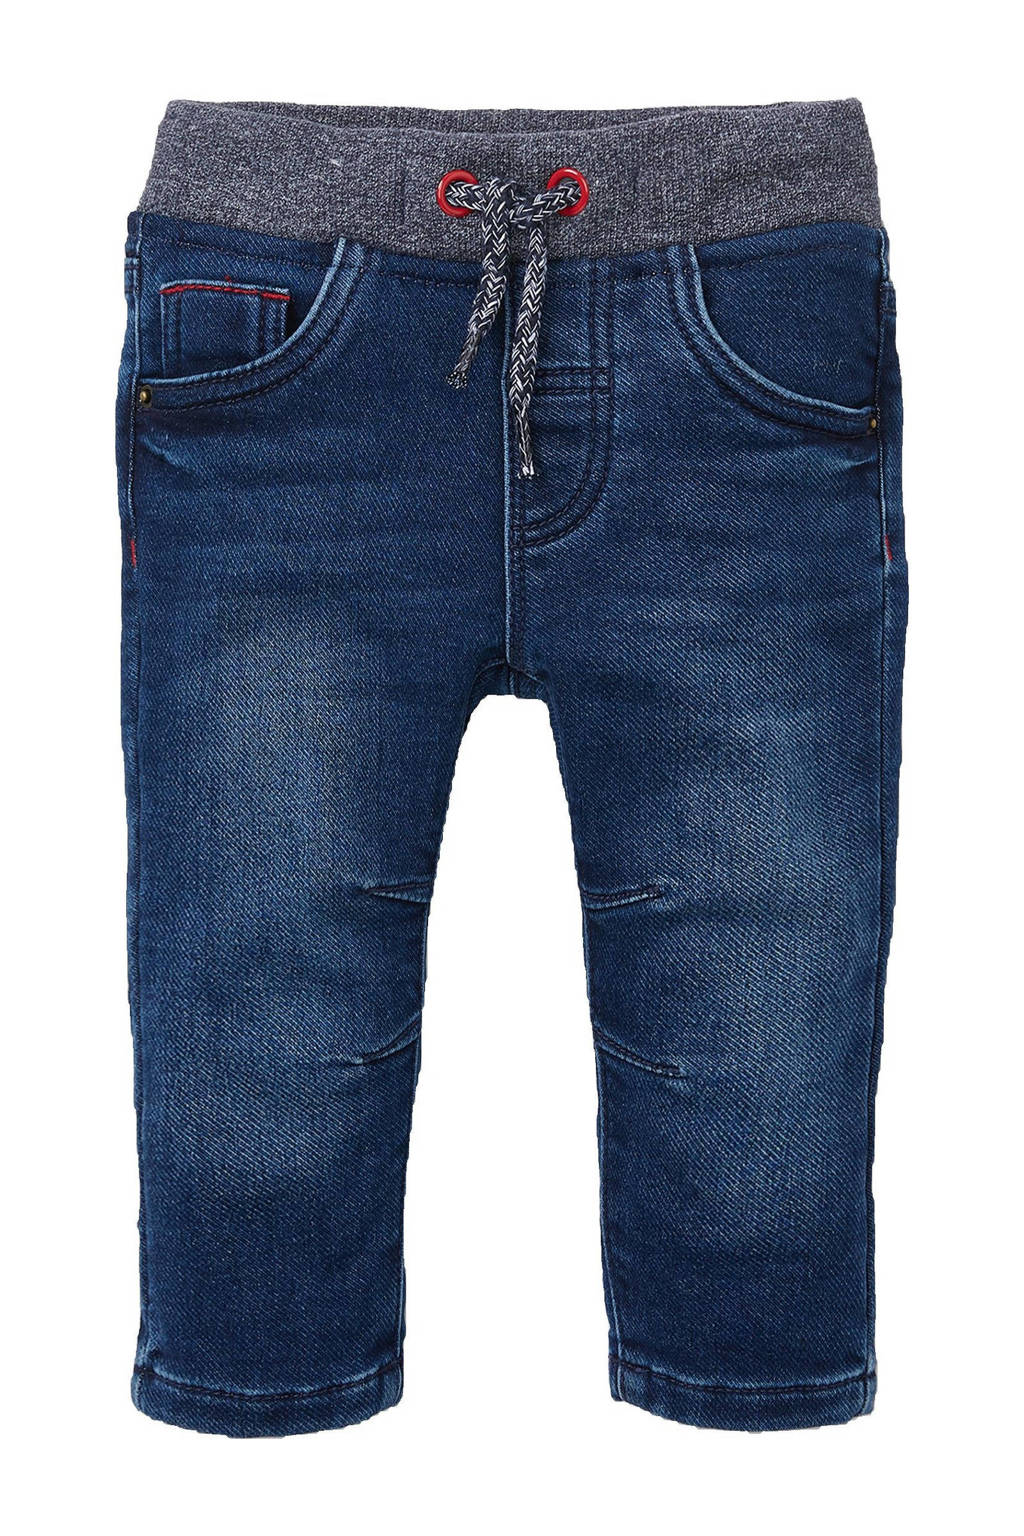 C&A Baby Club regular fit jeans donkerblauw, Donkerblauw